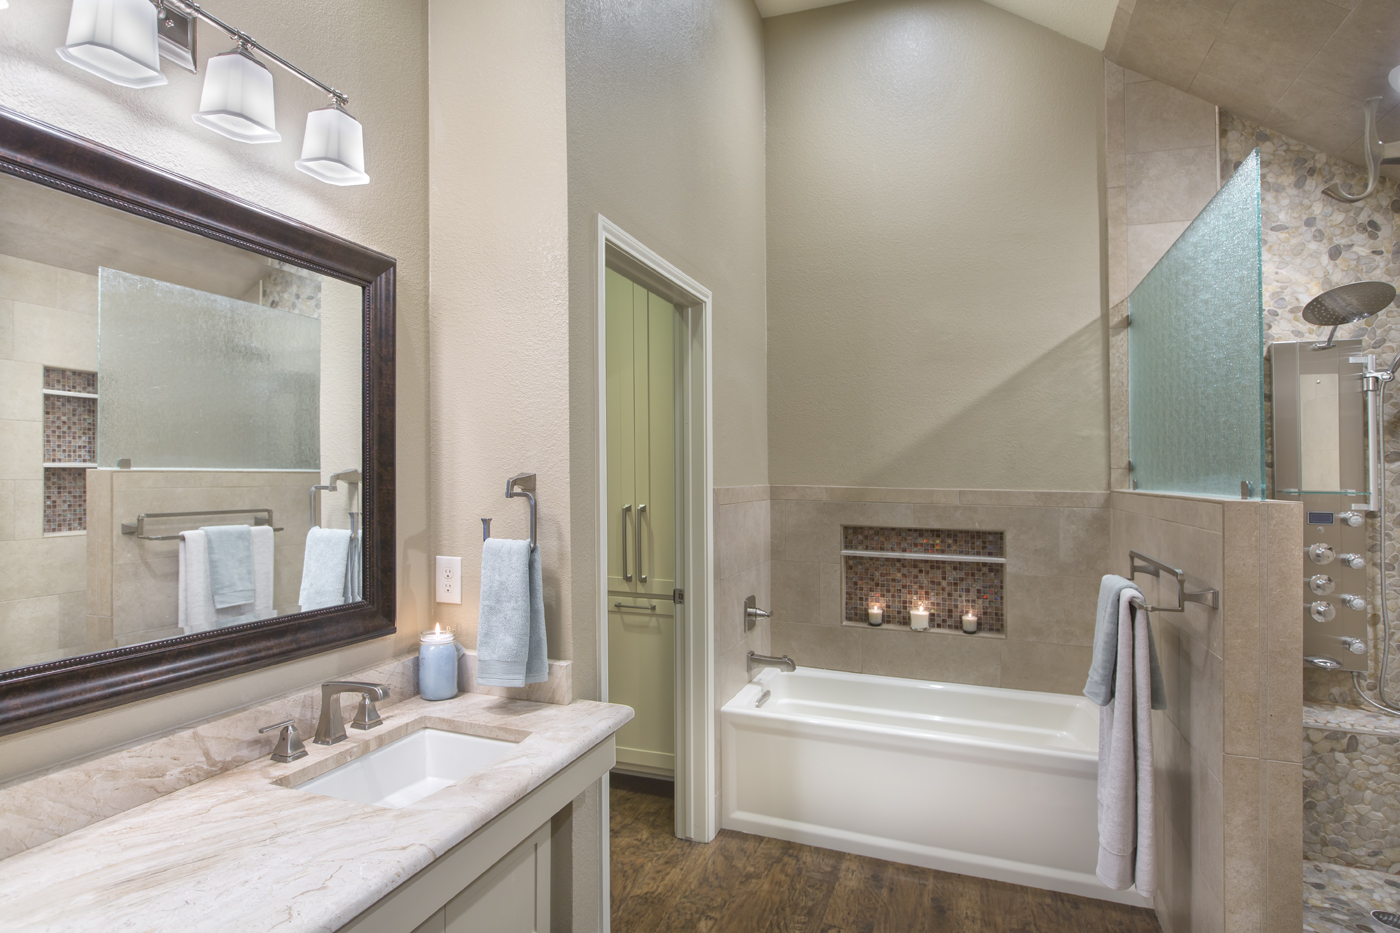 Old home bathroom remodel ideas - Our Recent Clients In Grand Prairie Texas Were Looking To Make Updates And Modifications Throughout The Majority Of Their 20 Year Old Home